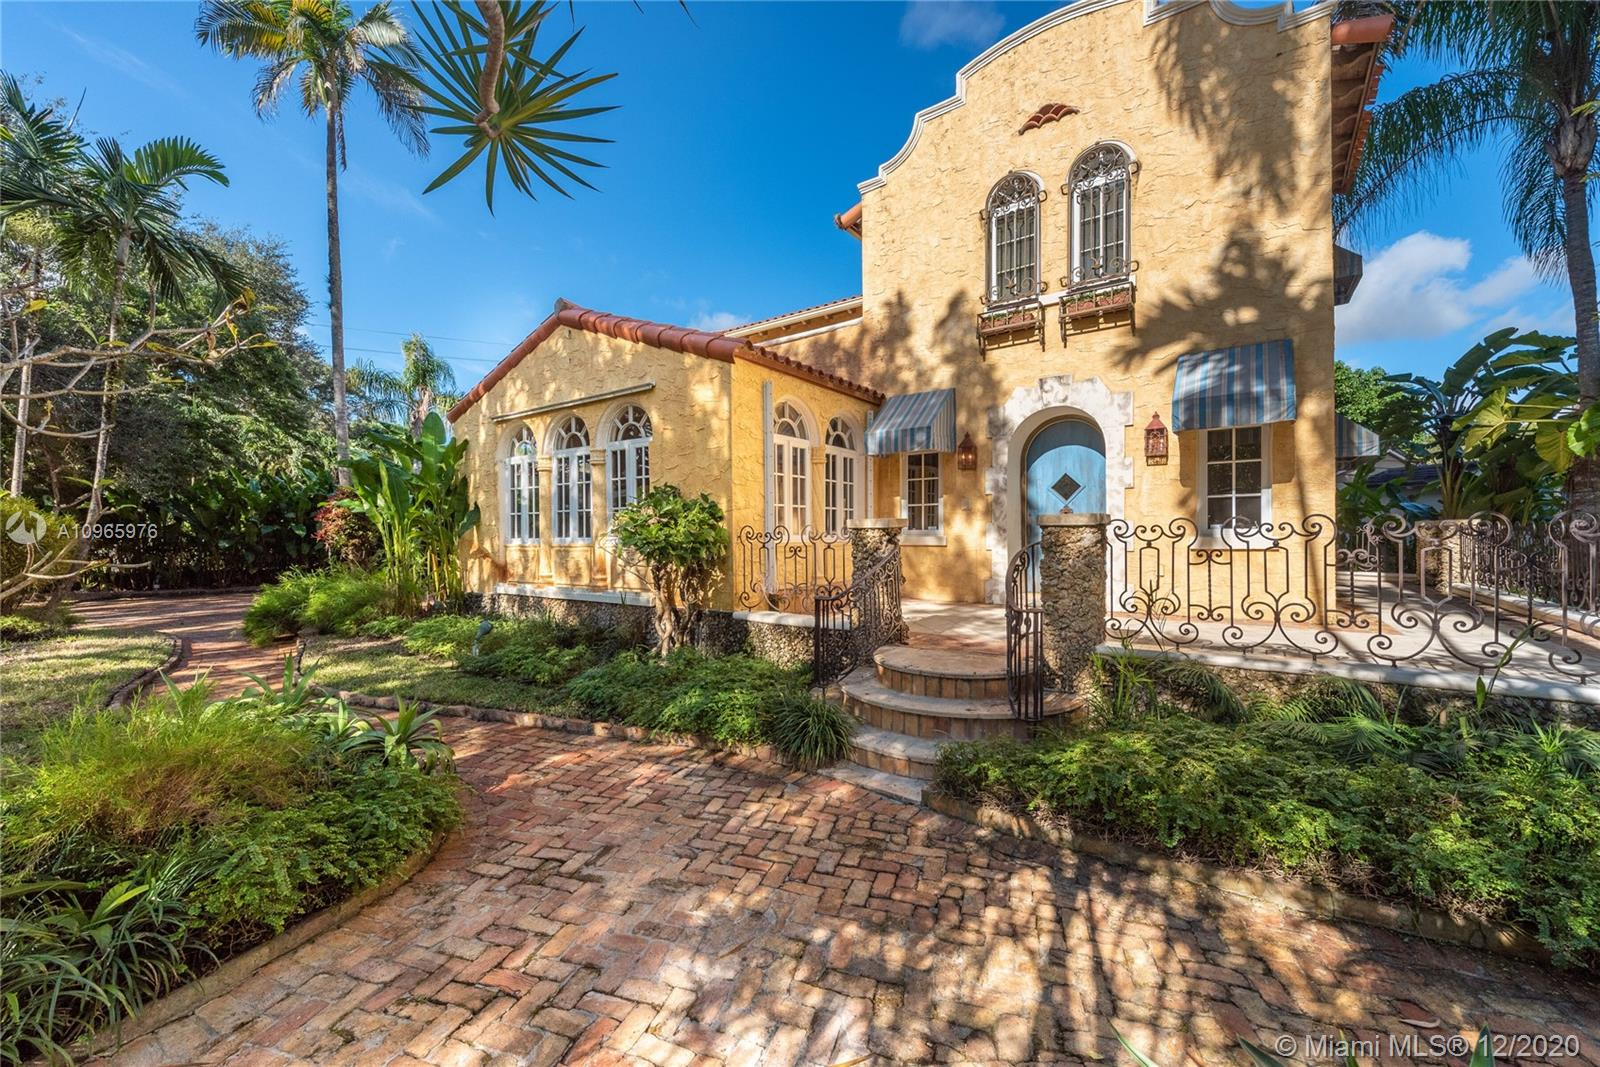 New Listing. Sitting on a large, 11,750 ft. corner lot at Granada and Coral Way, this classic 1925 mansion is ready for a new family. Nestled under huge oaks and palms, this 5 bedroom/4.5 bath (4/3.5 in main house + maid's quarters) home has 3,451 sq. ft. and has charm and character at every turn. Foyer entry, with fireplace spacious living room with Chicago brick floor. The family room has French doors to a terrace and garden. Formal Dining room. The breakfast room and kitchen at the rear with access to a maid's quarters next to the carport. Upstairs find the master suite with three other bedrooms plus an outdoor patio.  FIRM PRICE.  Easy to show